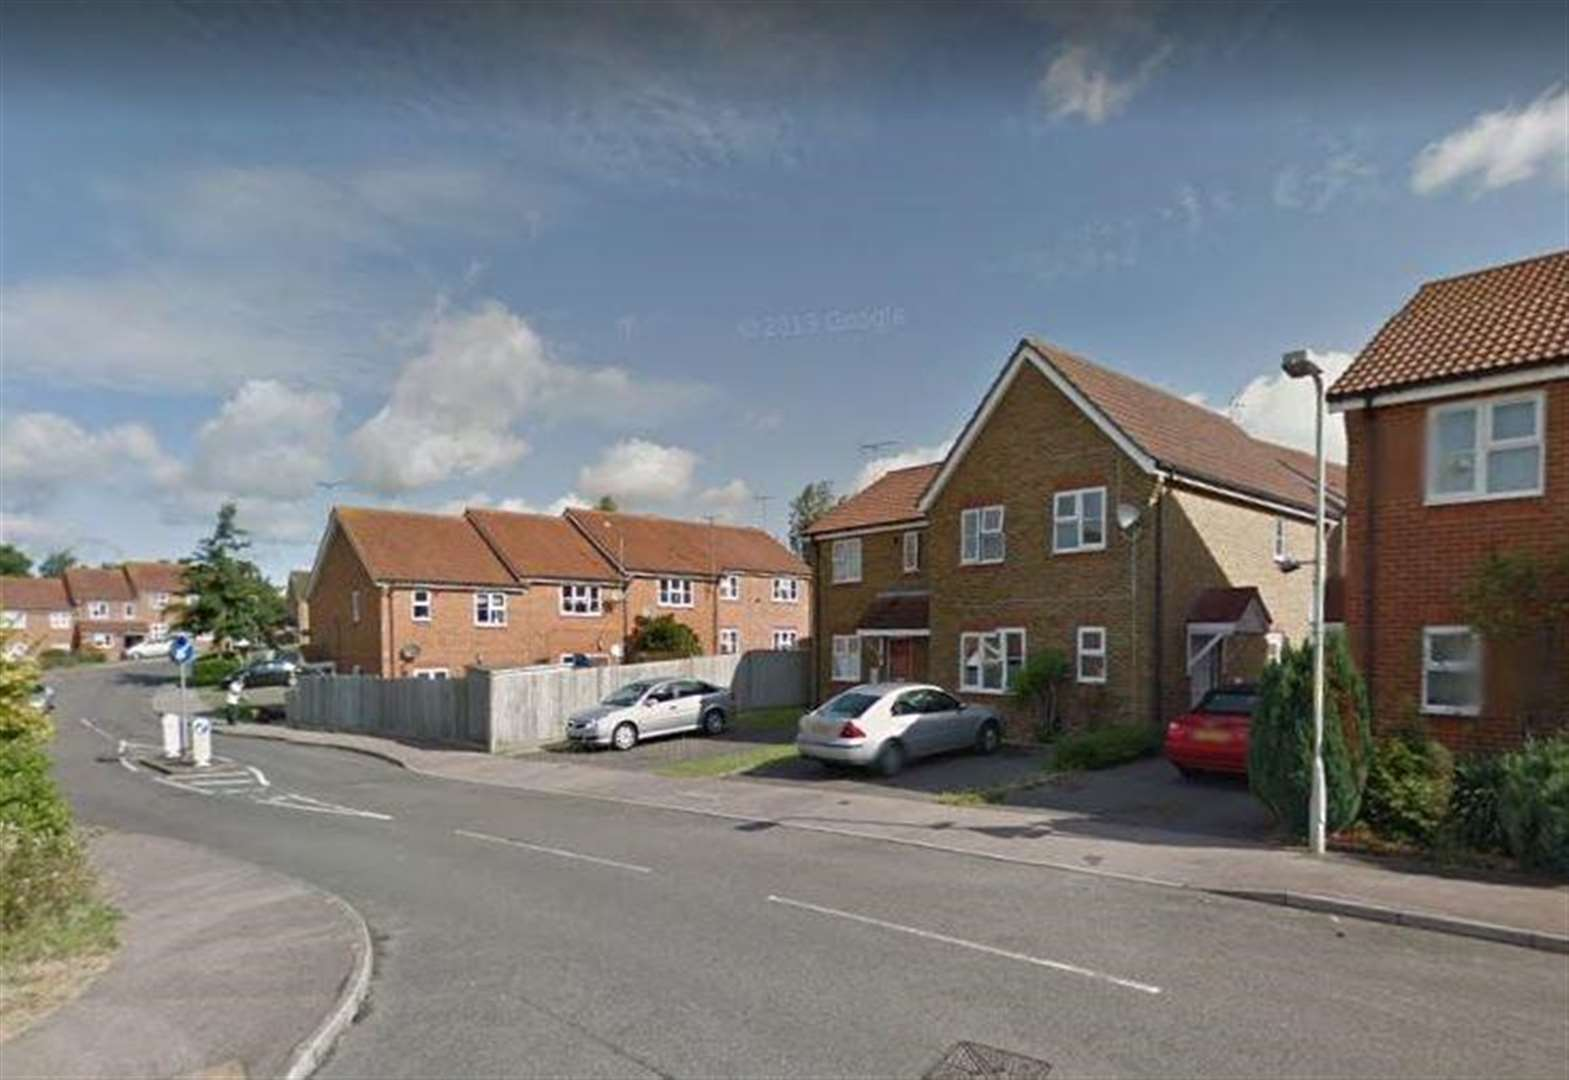 Man 'attacked' on housing estate